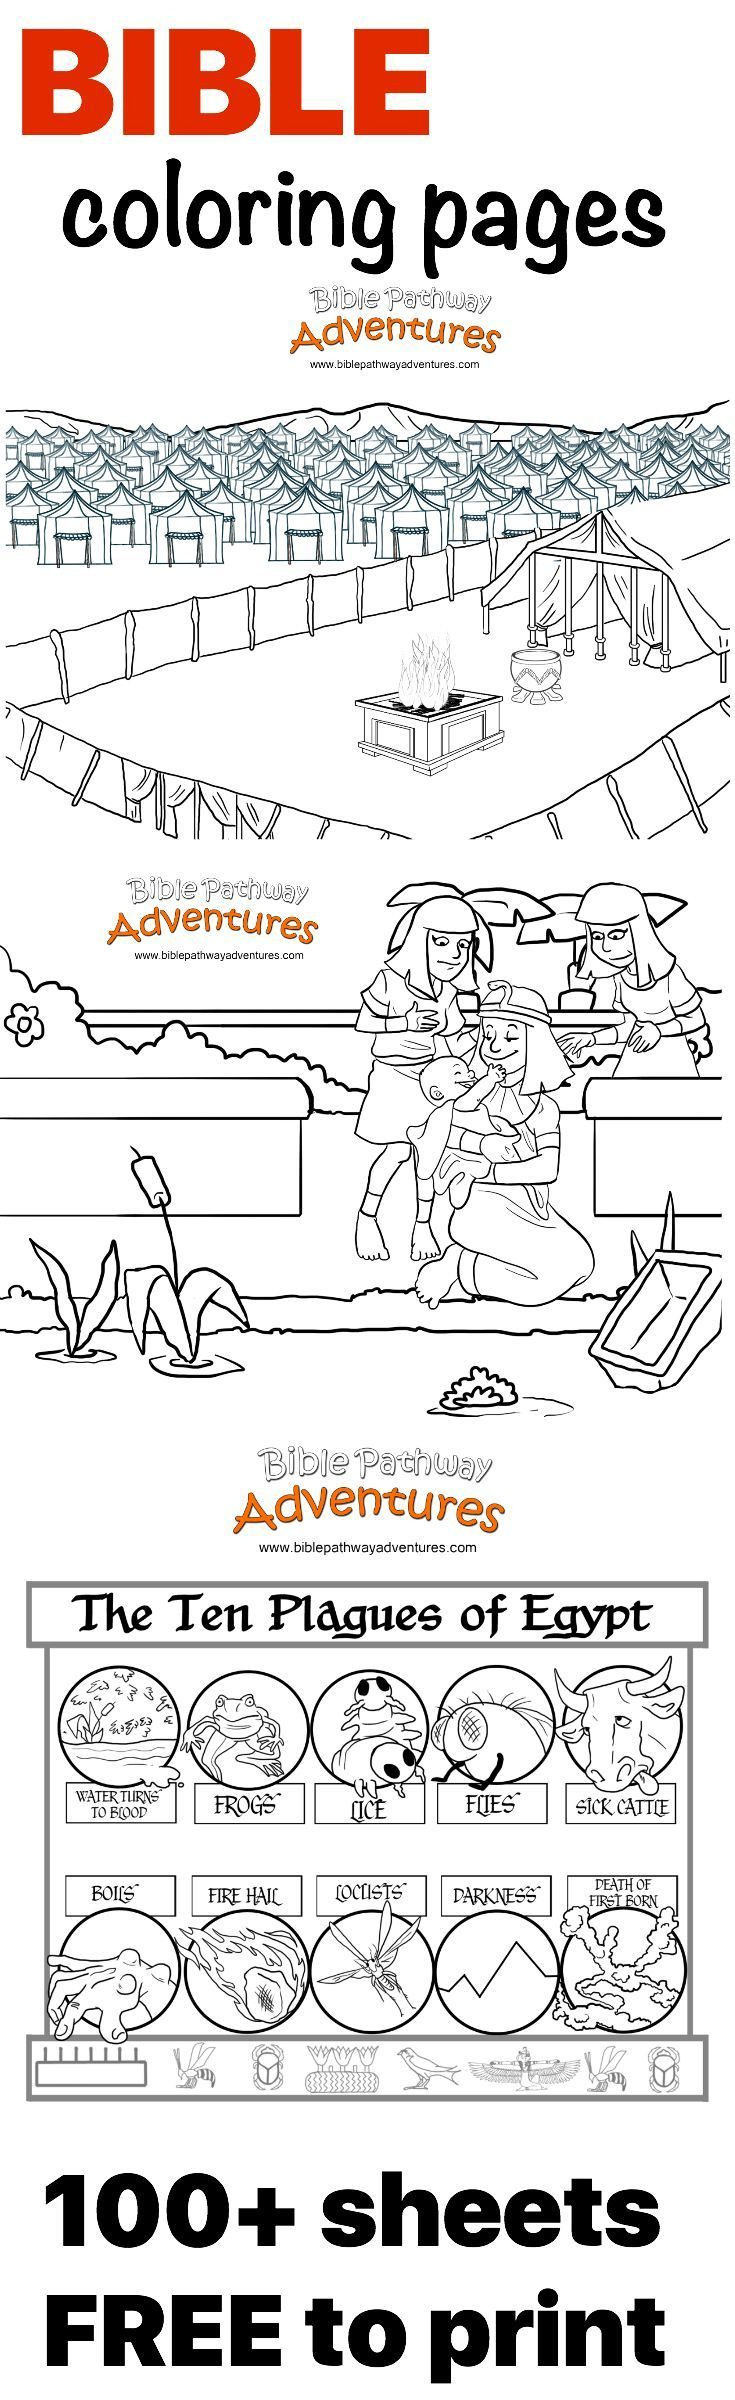 100 Bible Coloring Pages